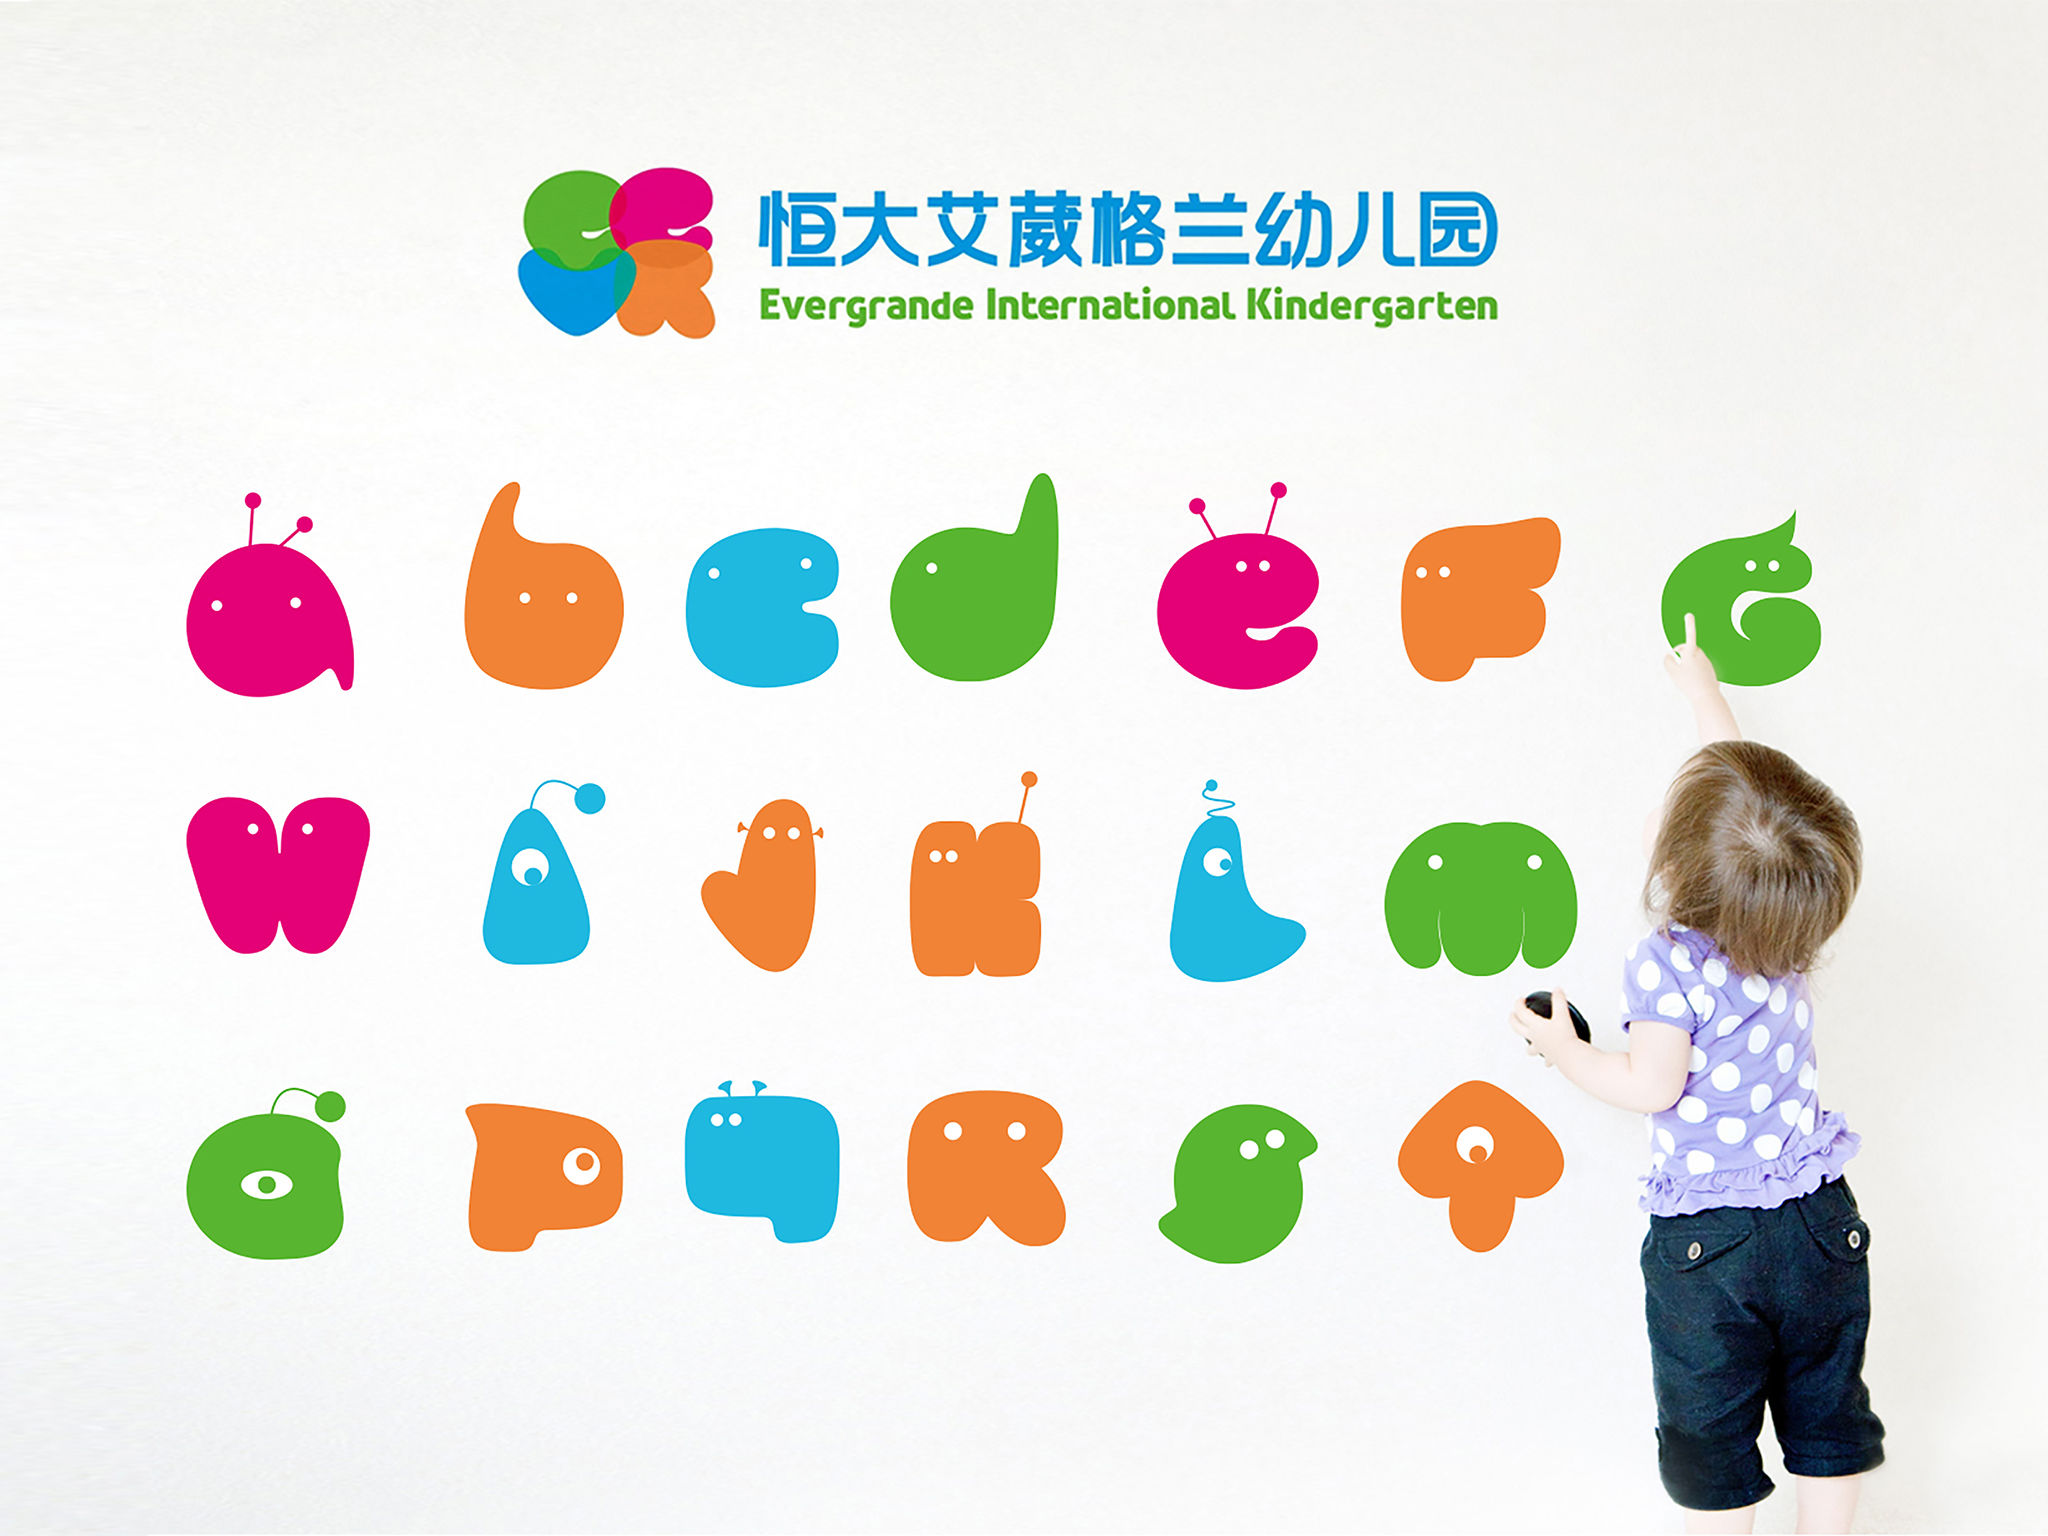 Evergrande Kindergarten